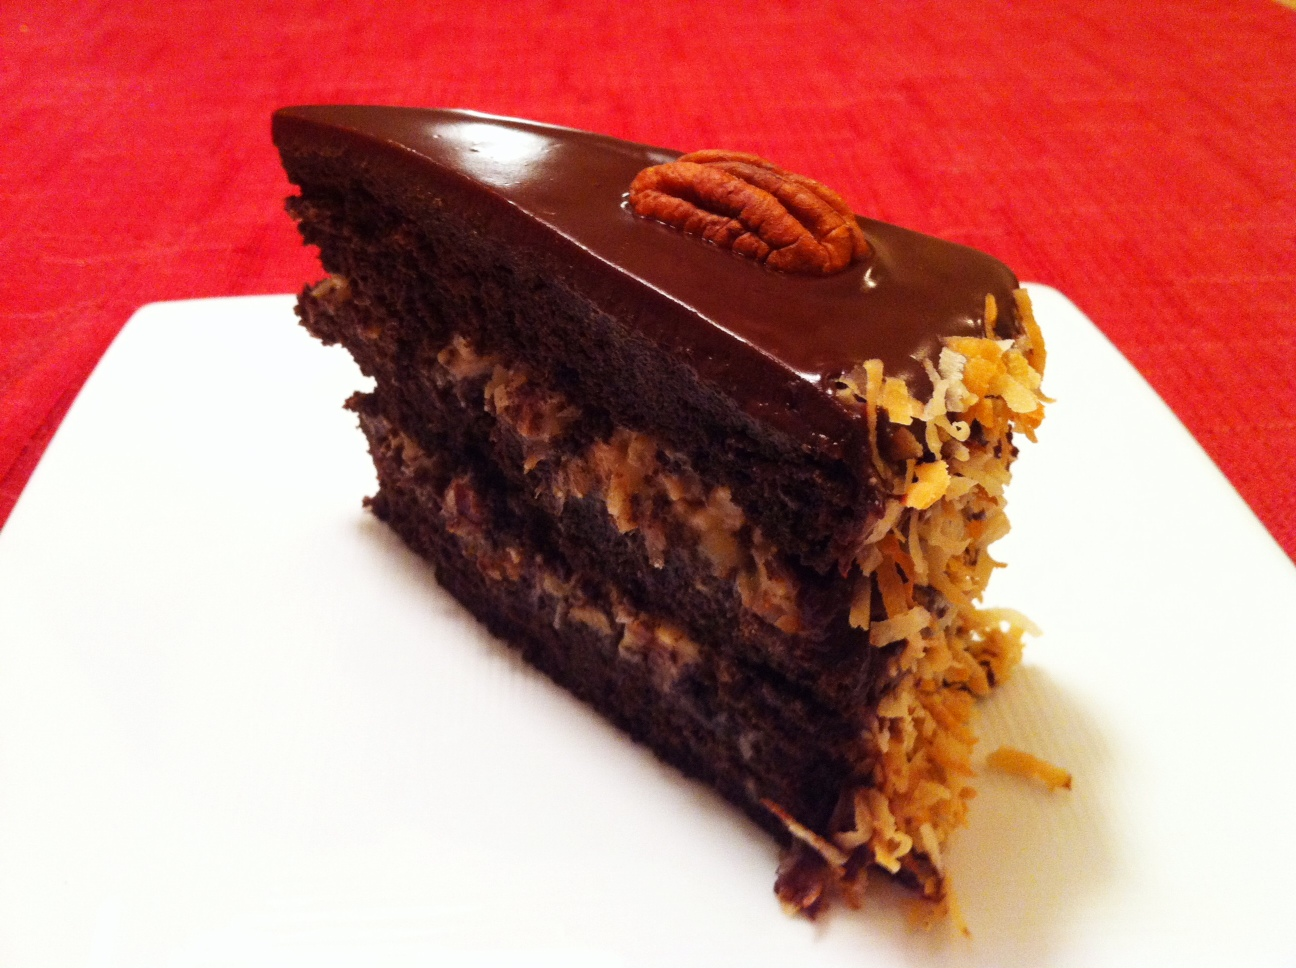 Fueling with Flavour: German's Chocolate Cake with Toasted Coconut